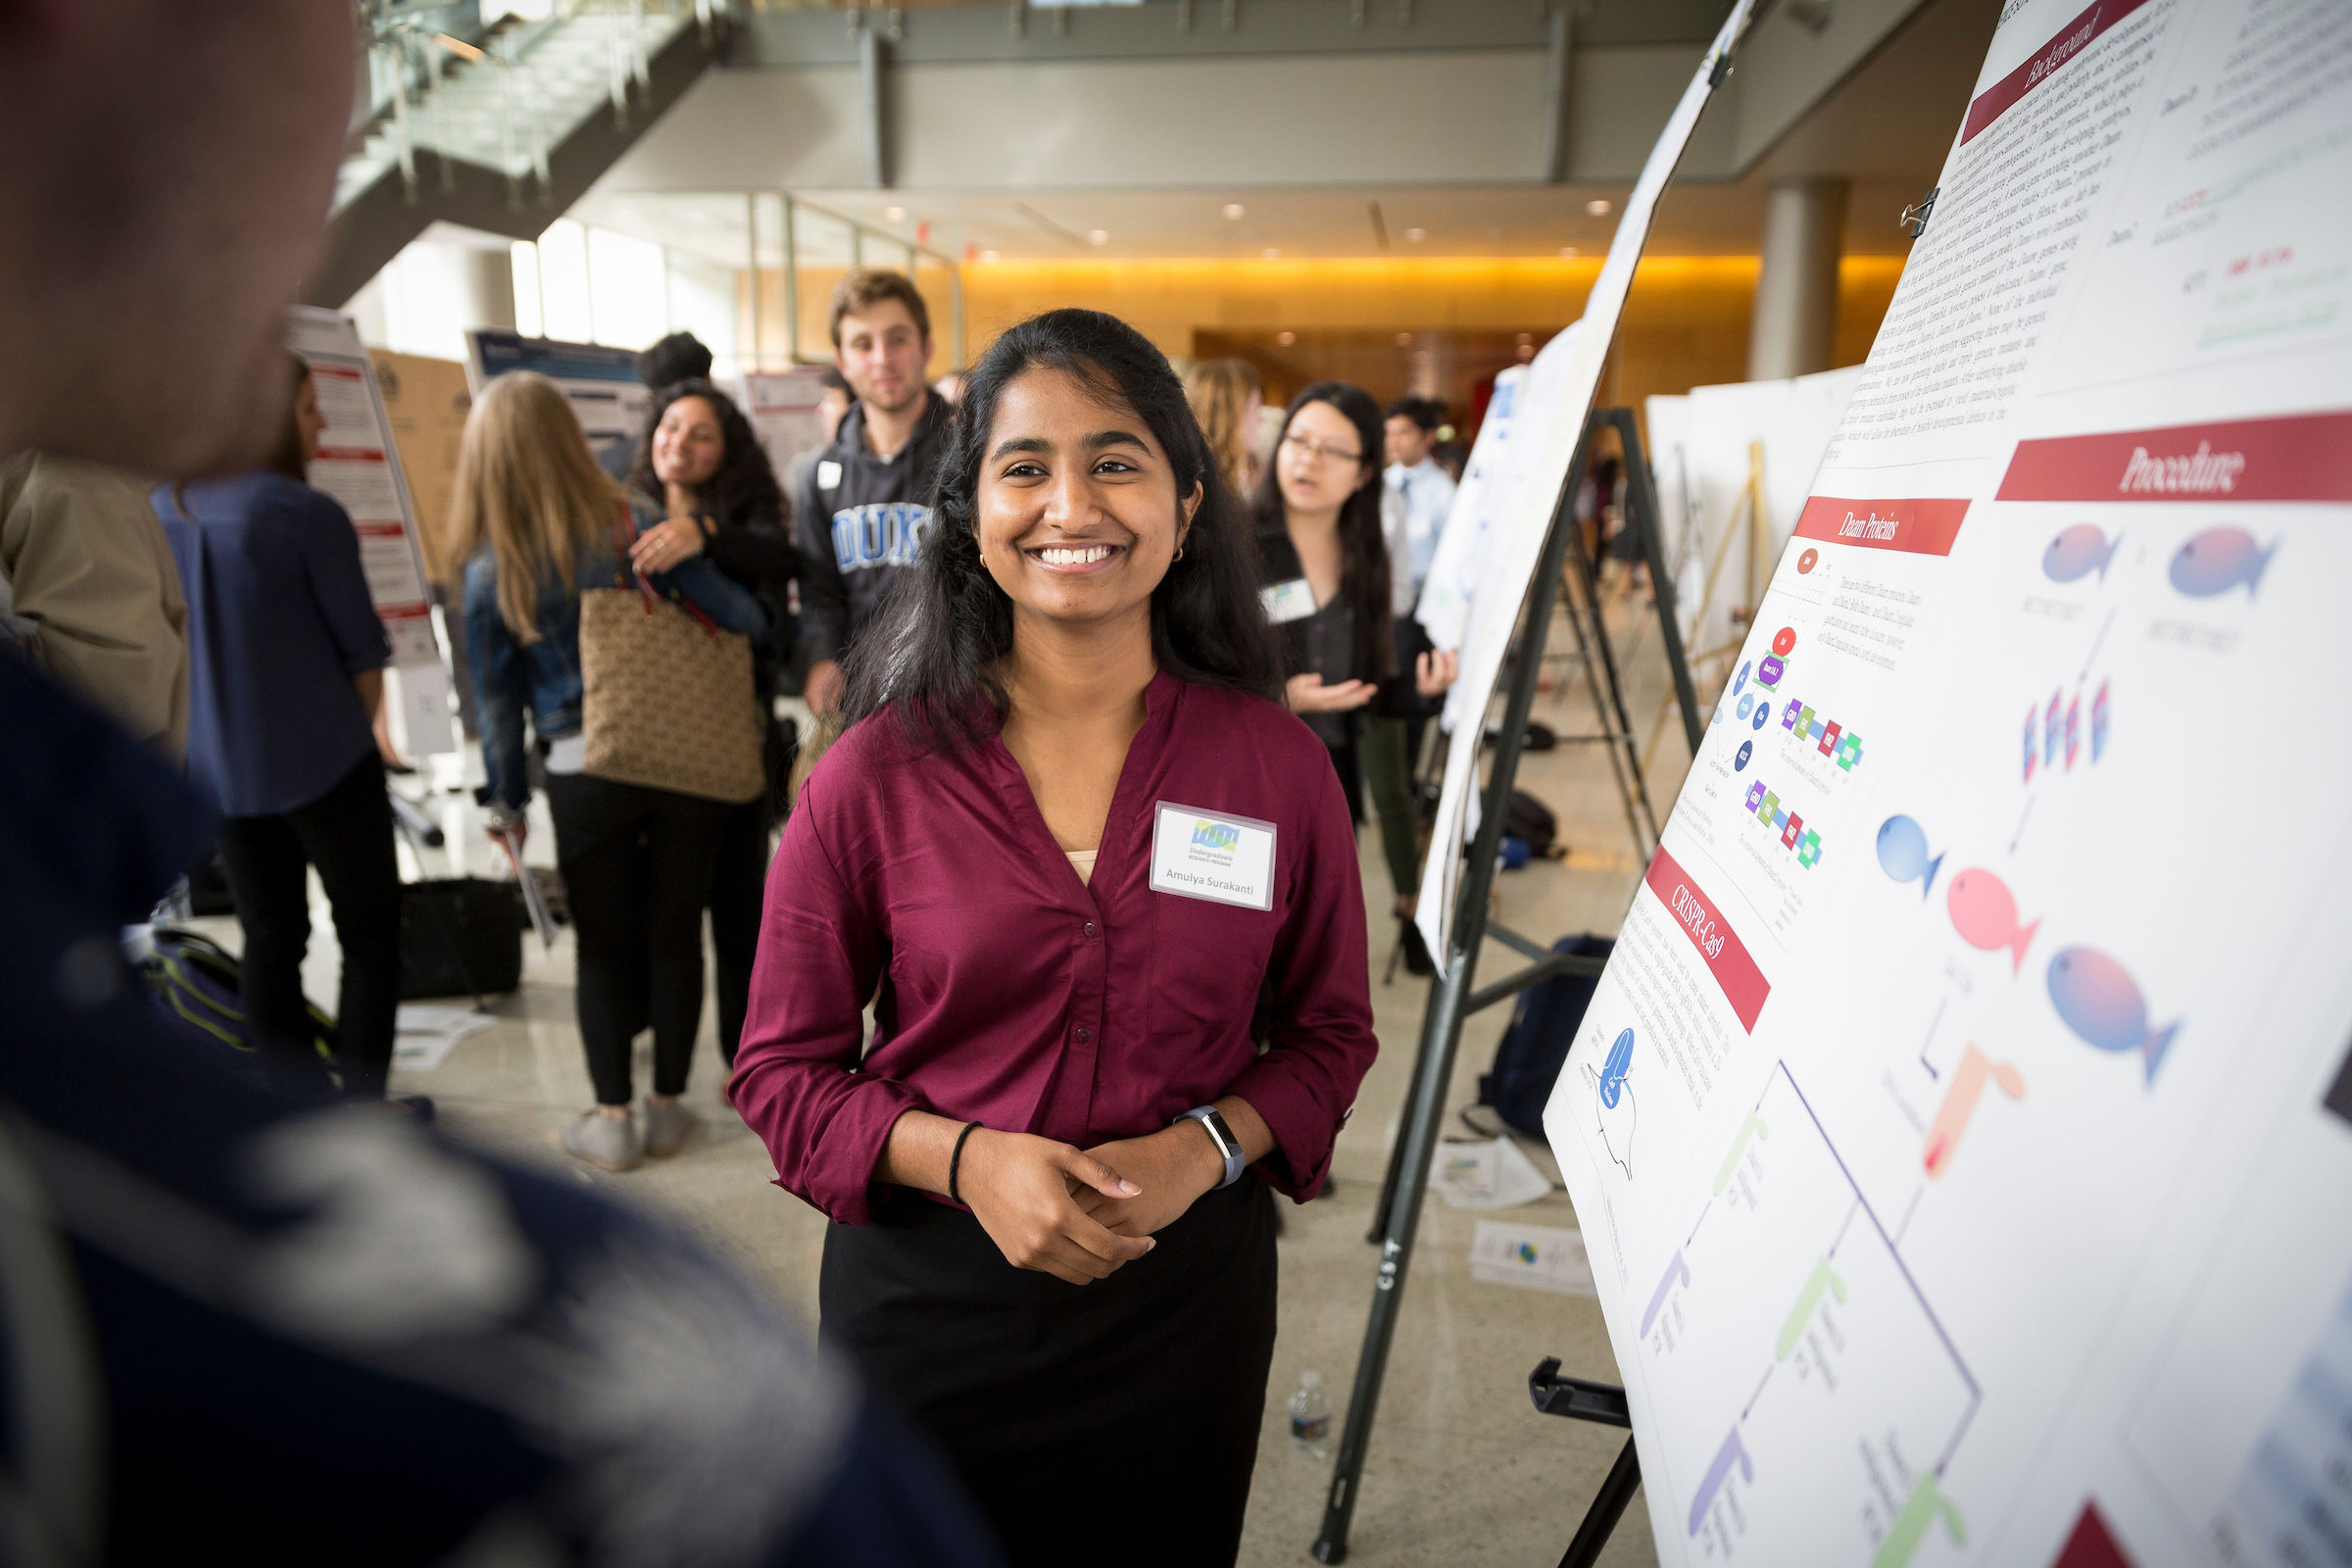 A College of Science and Technology student standing in front of her poster during an industry conference.